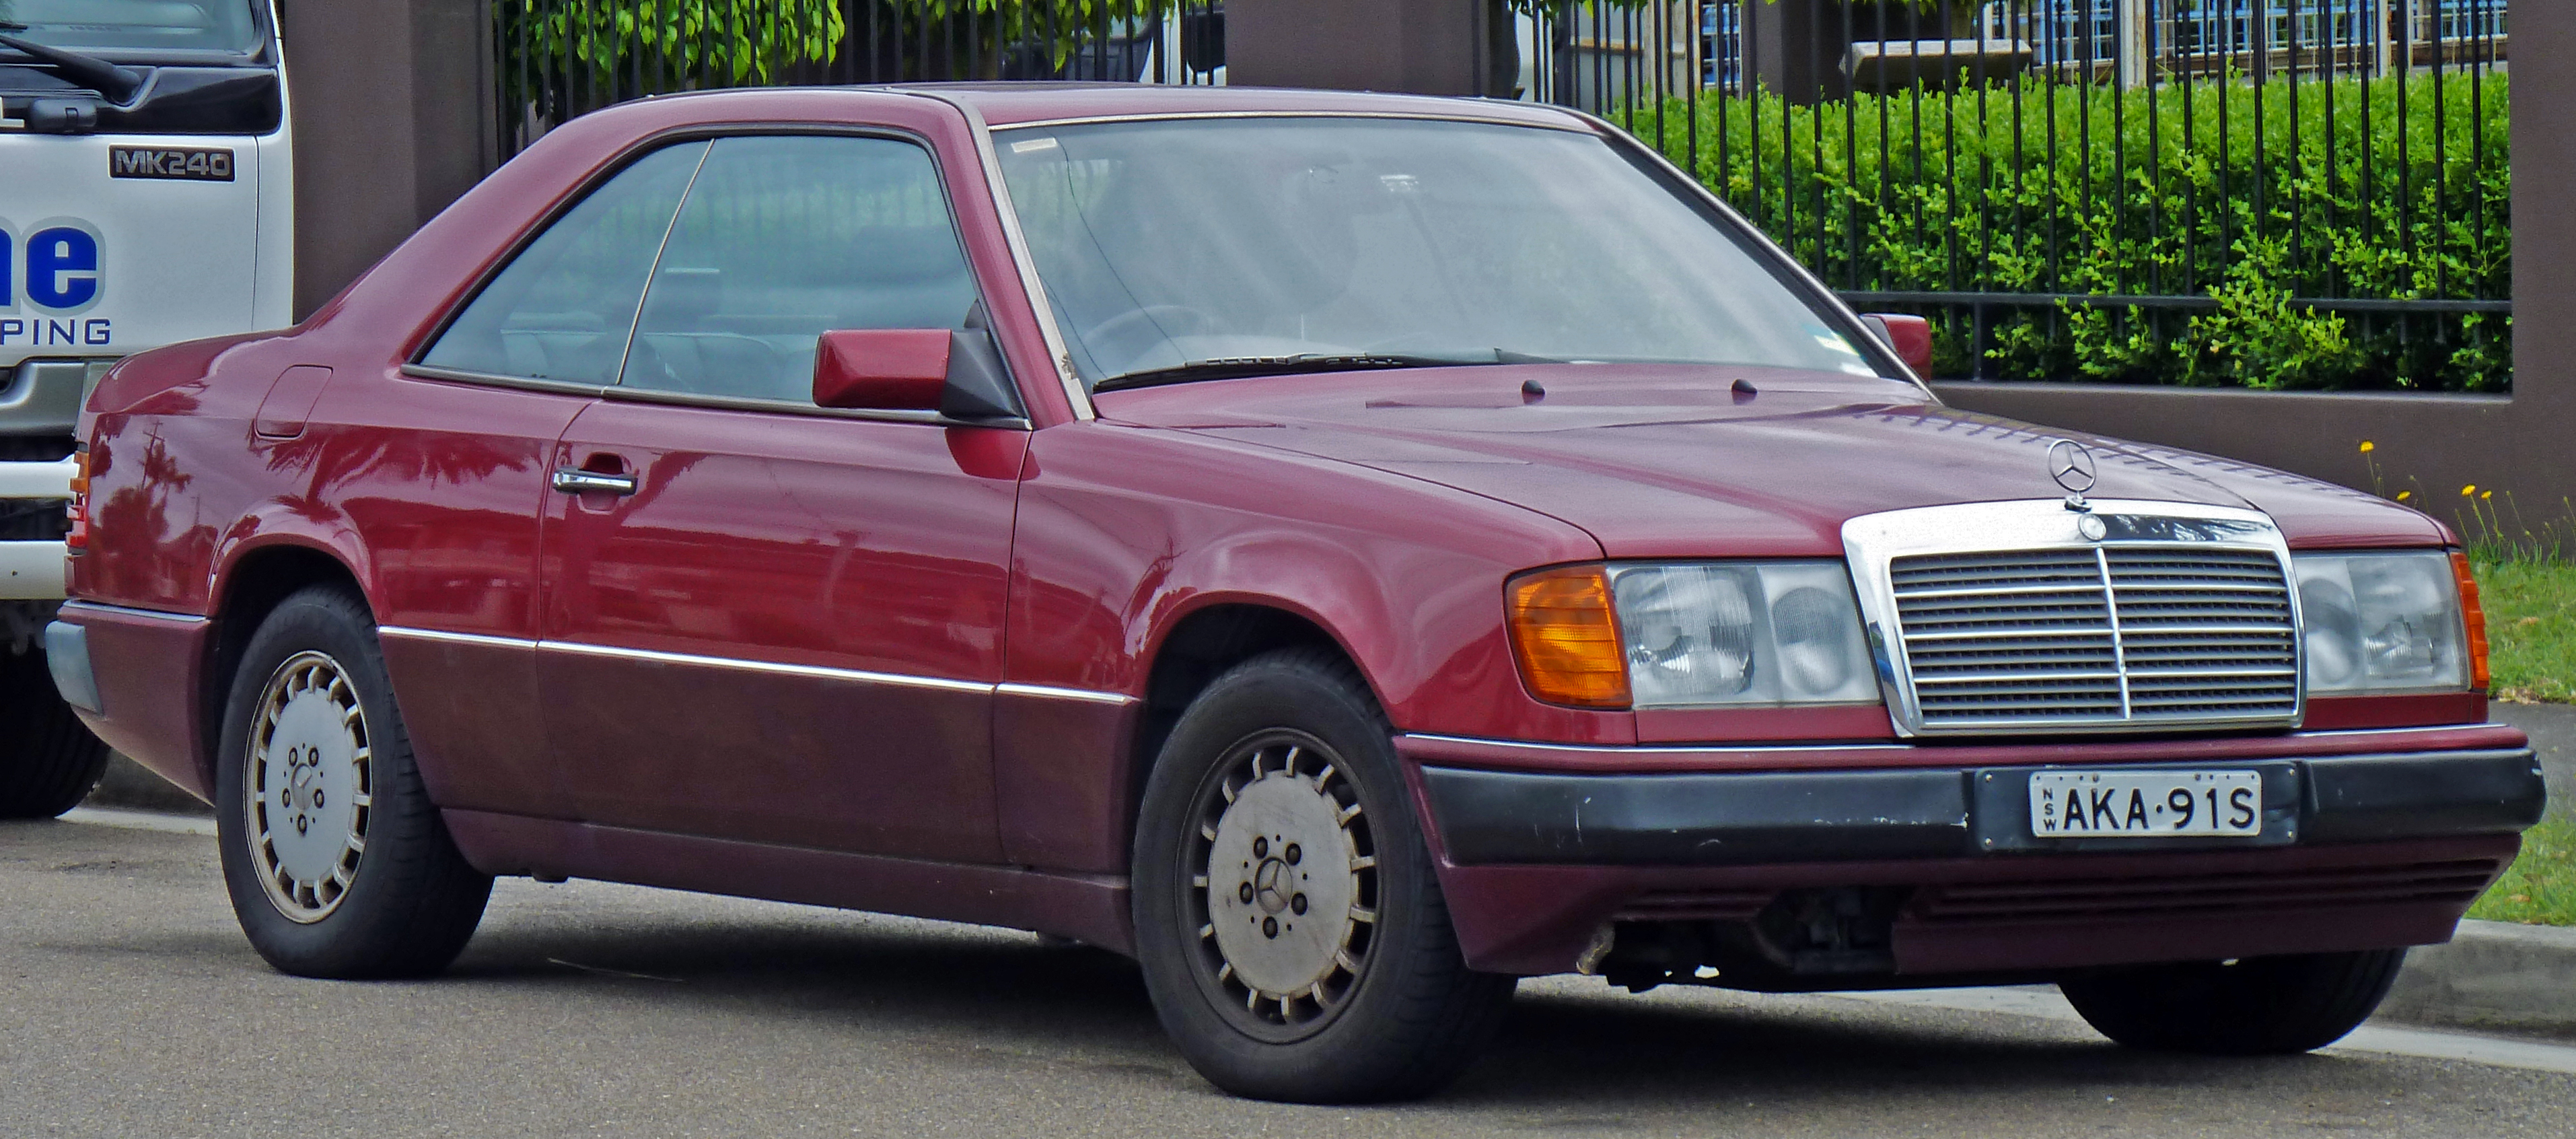 Mercedes benz 300 ce 24 picture 15 reviews news for Mercedes benz 1990 e300